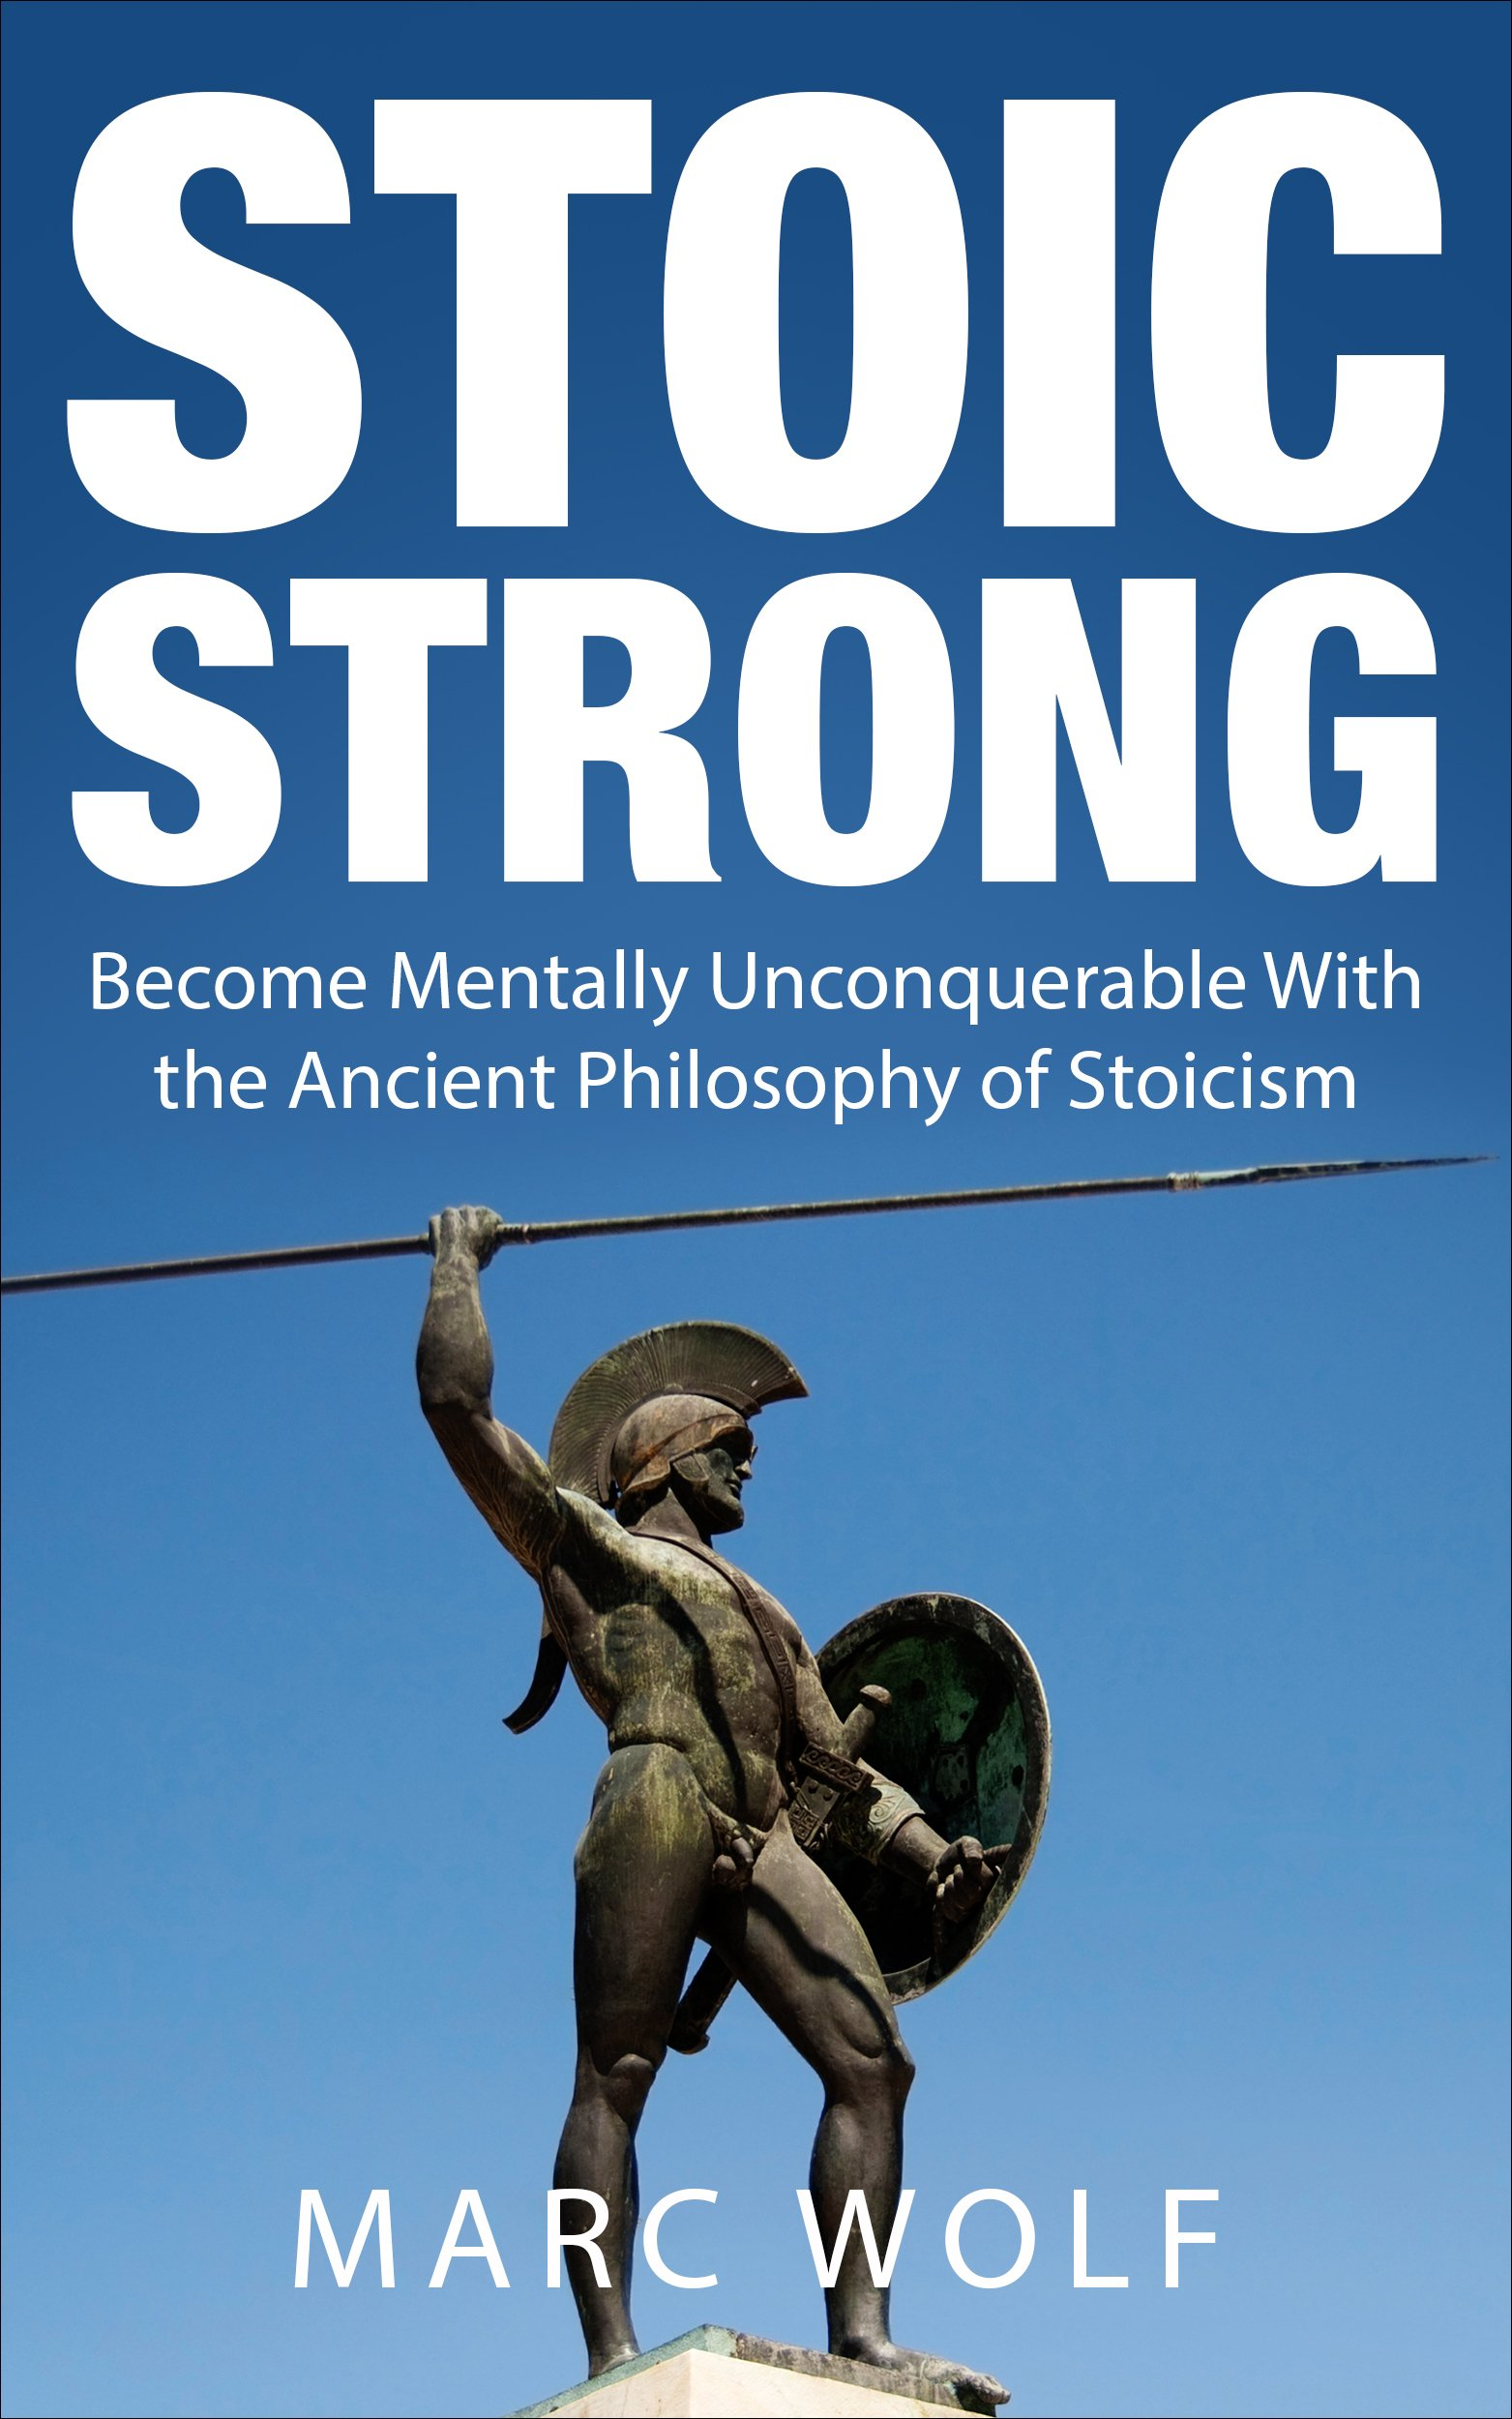 Stoic Strong  Become Mentally Unconquerable With The Ancient Philosophy Of Stoicism  Confidence Mental Toughness Mindfulness Happiness Self Discipline   English Edition